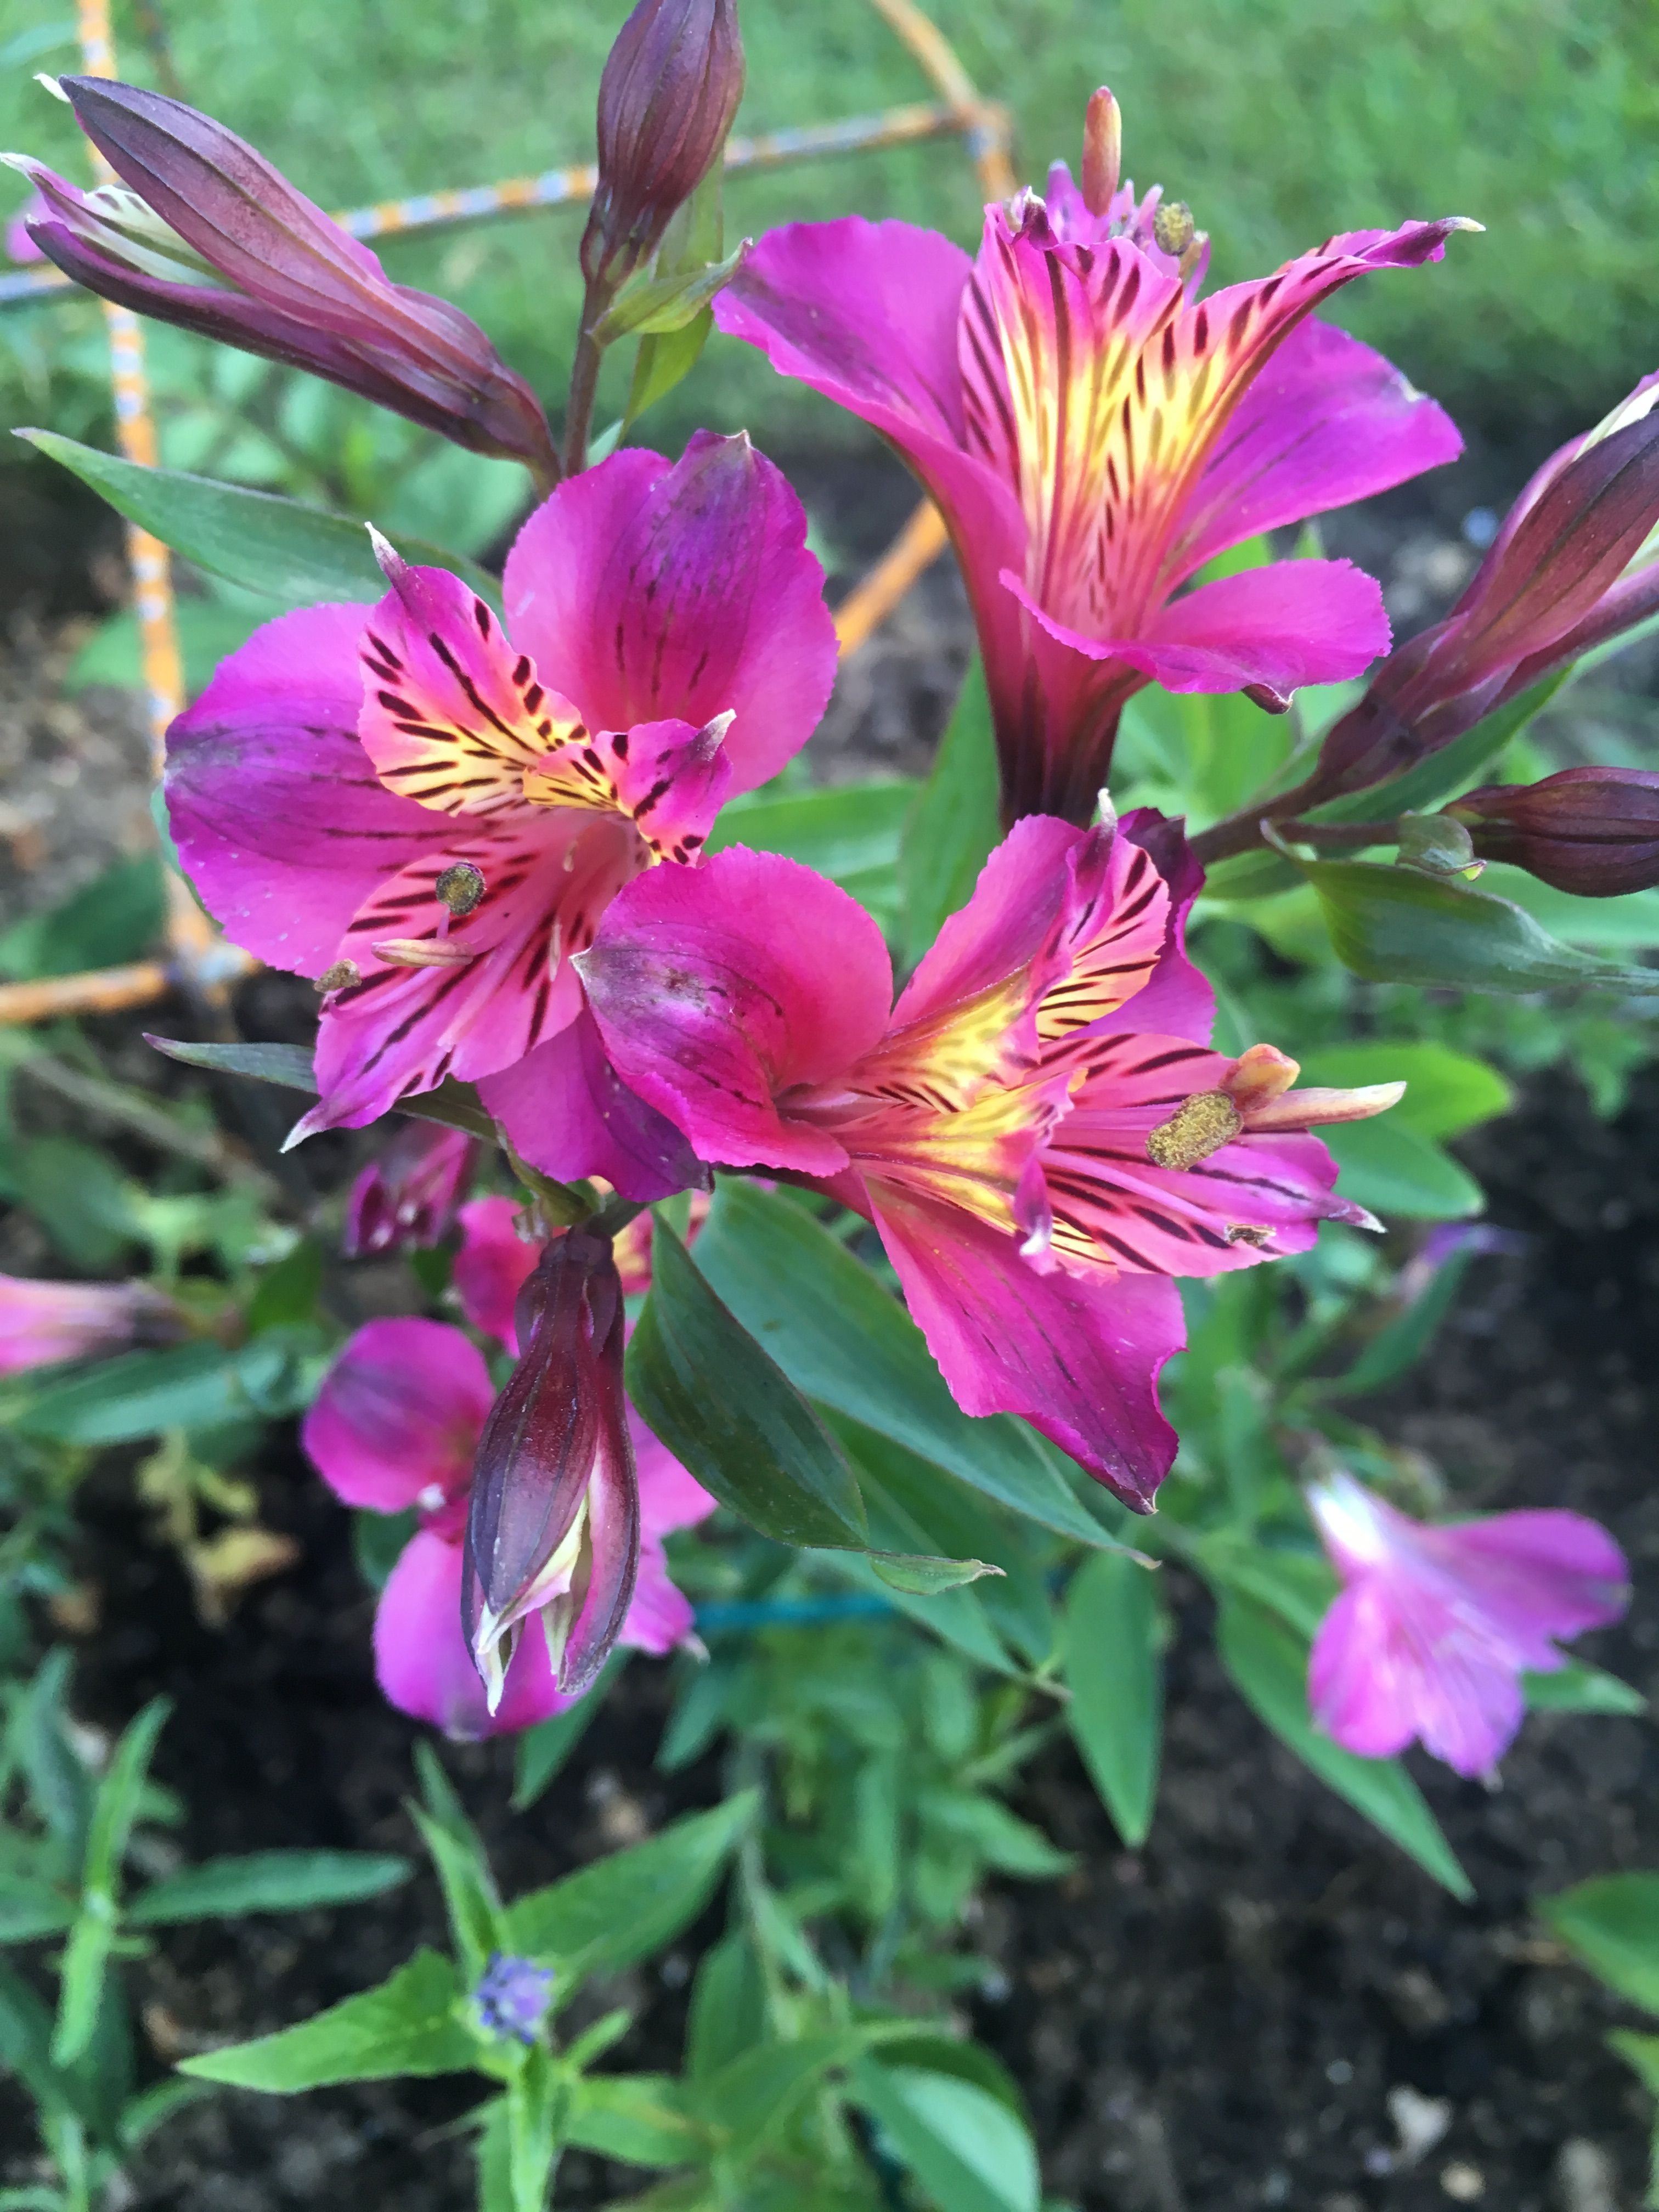 Alstroemeria X 2 From Chenies Mislabelled As Sweet Laura Into Bb3 One Survived Summer 20 Alstroemeria Peruvian Lilies Plants